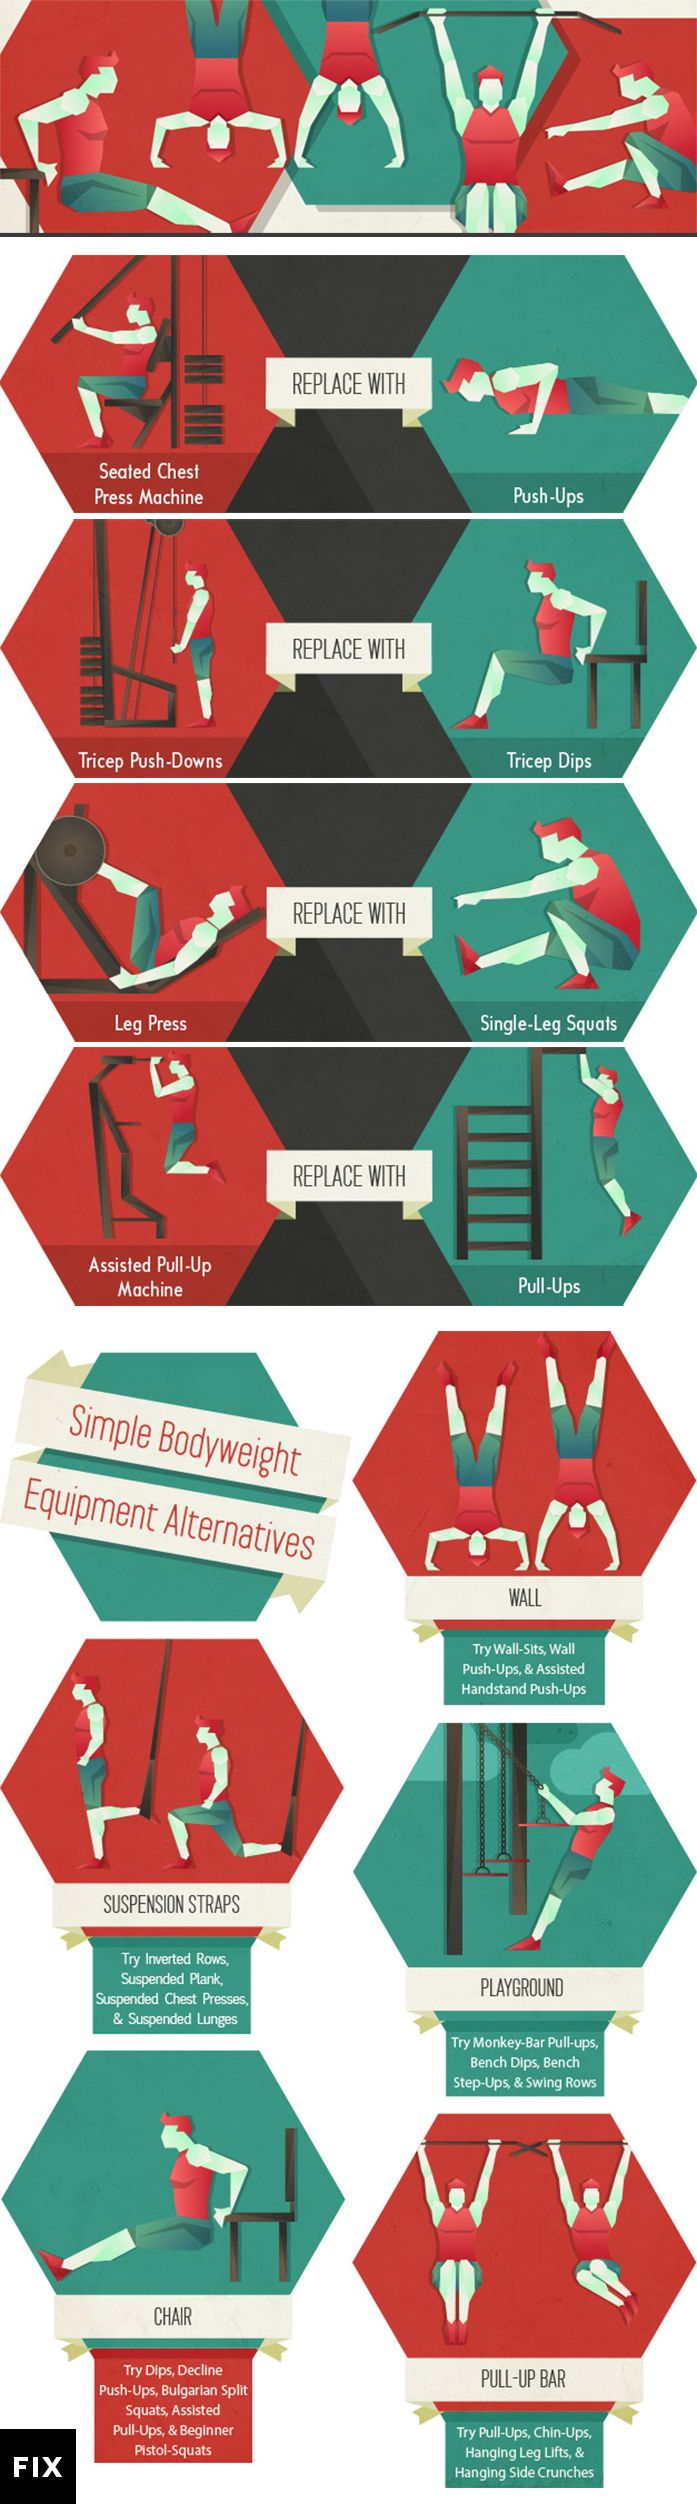 No Equipment? No Problem! The Benefits of Bodyweight Training - www.getyourfittog... #exercise #fitness #workout